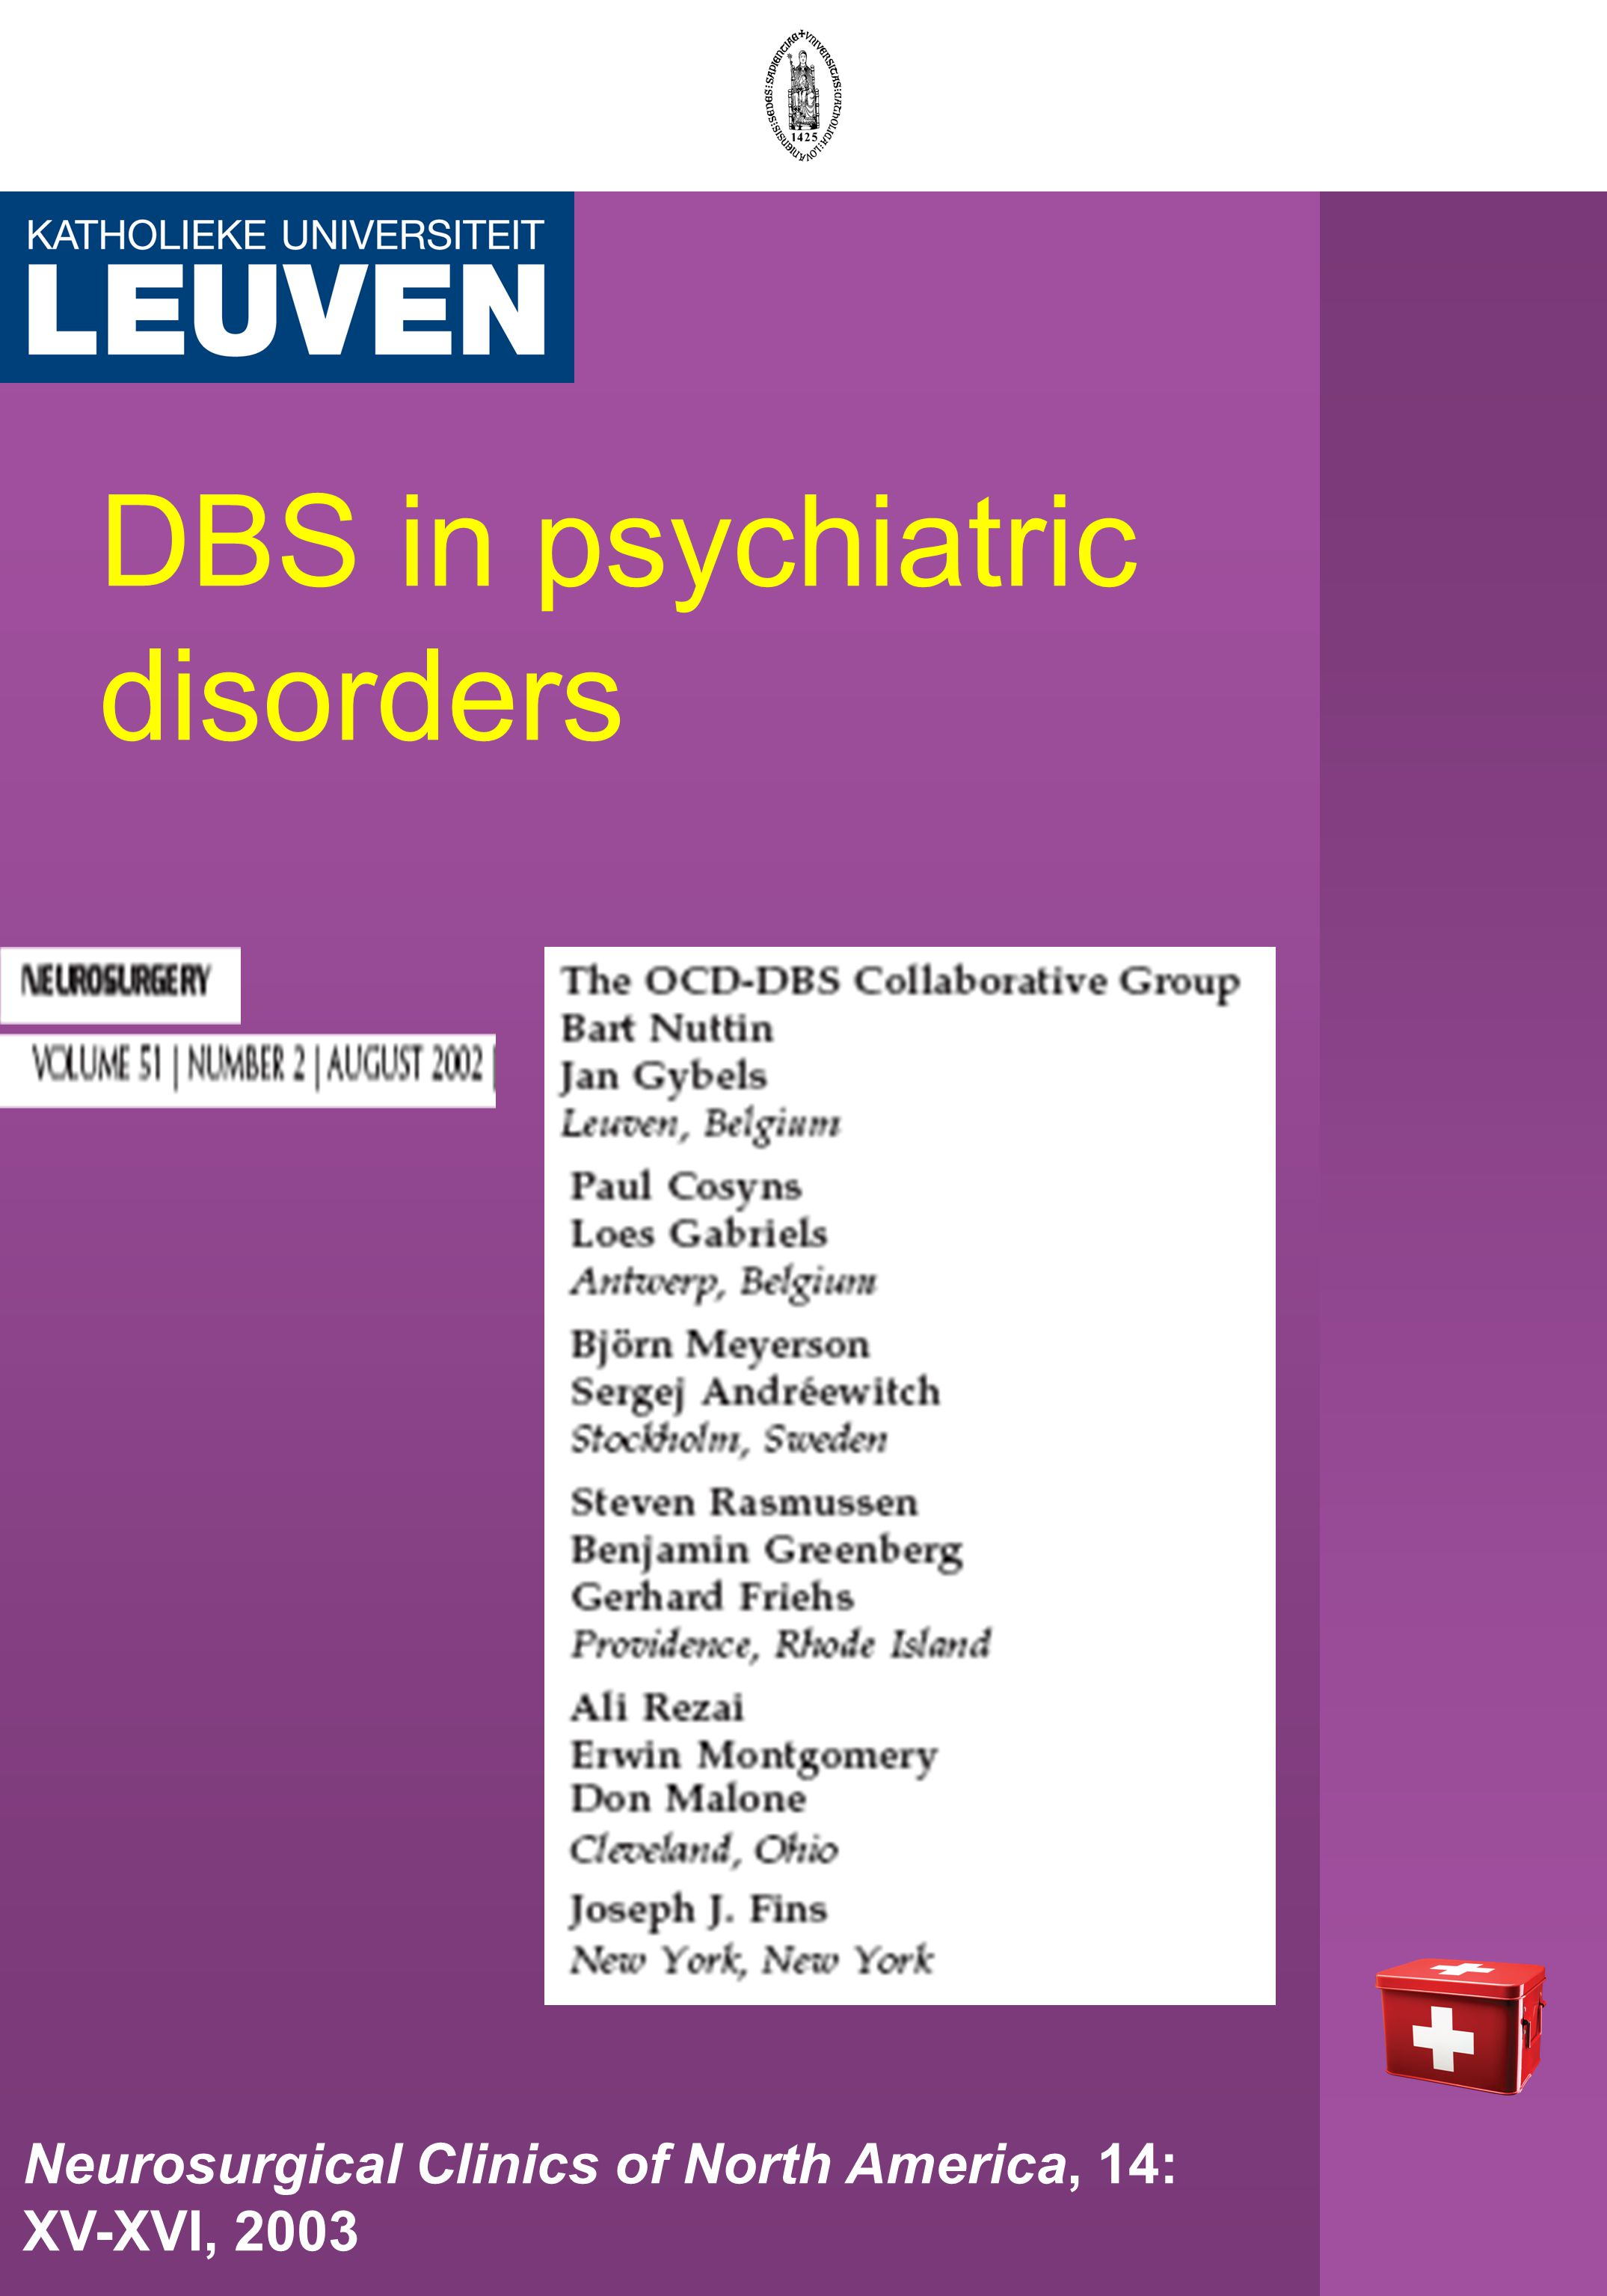 DBS in psychiatric disorders Neurosurgical Clinics of North America, 14: XV-XVI, 2003